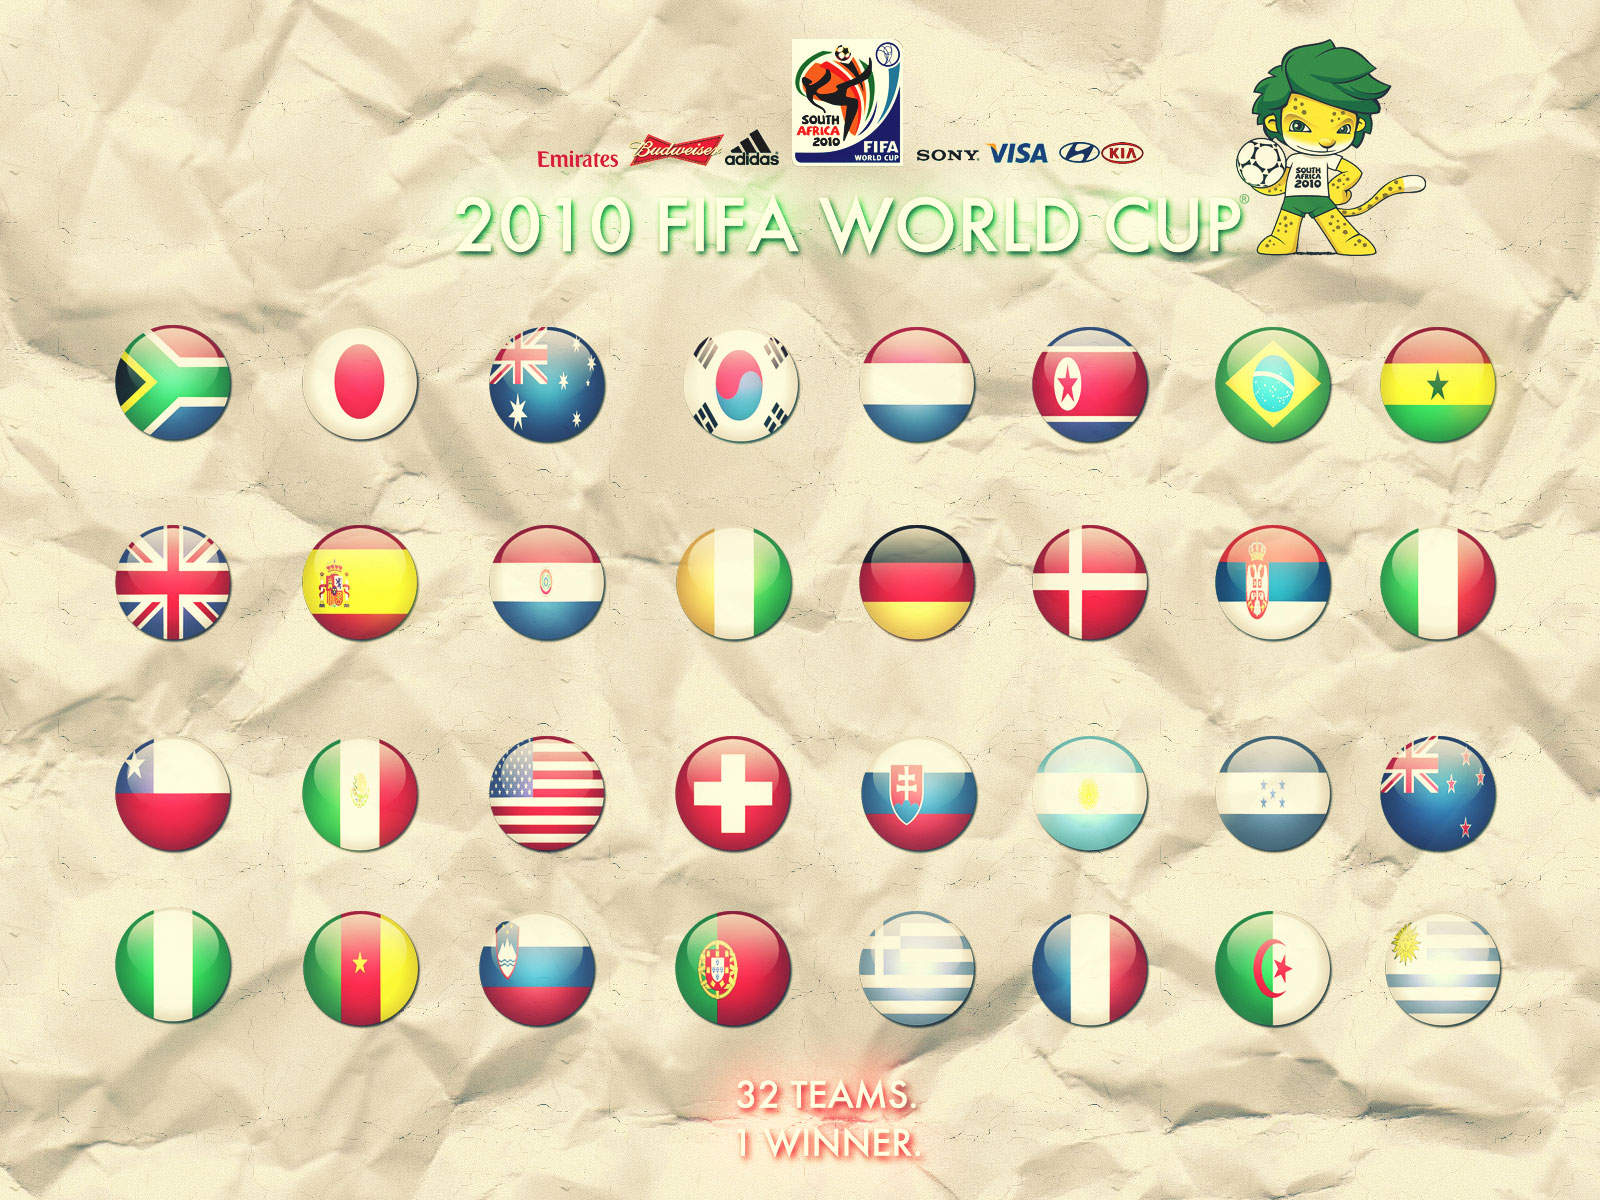 2010 FIFA World Cup event effects